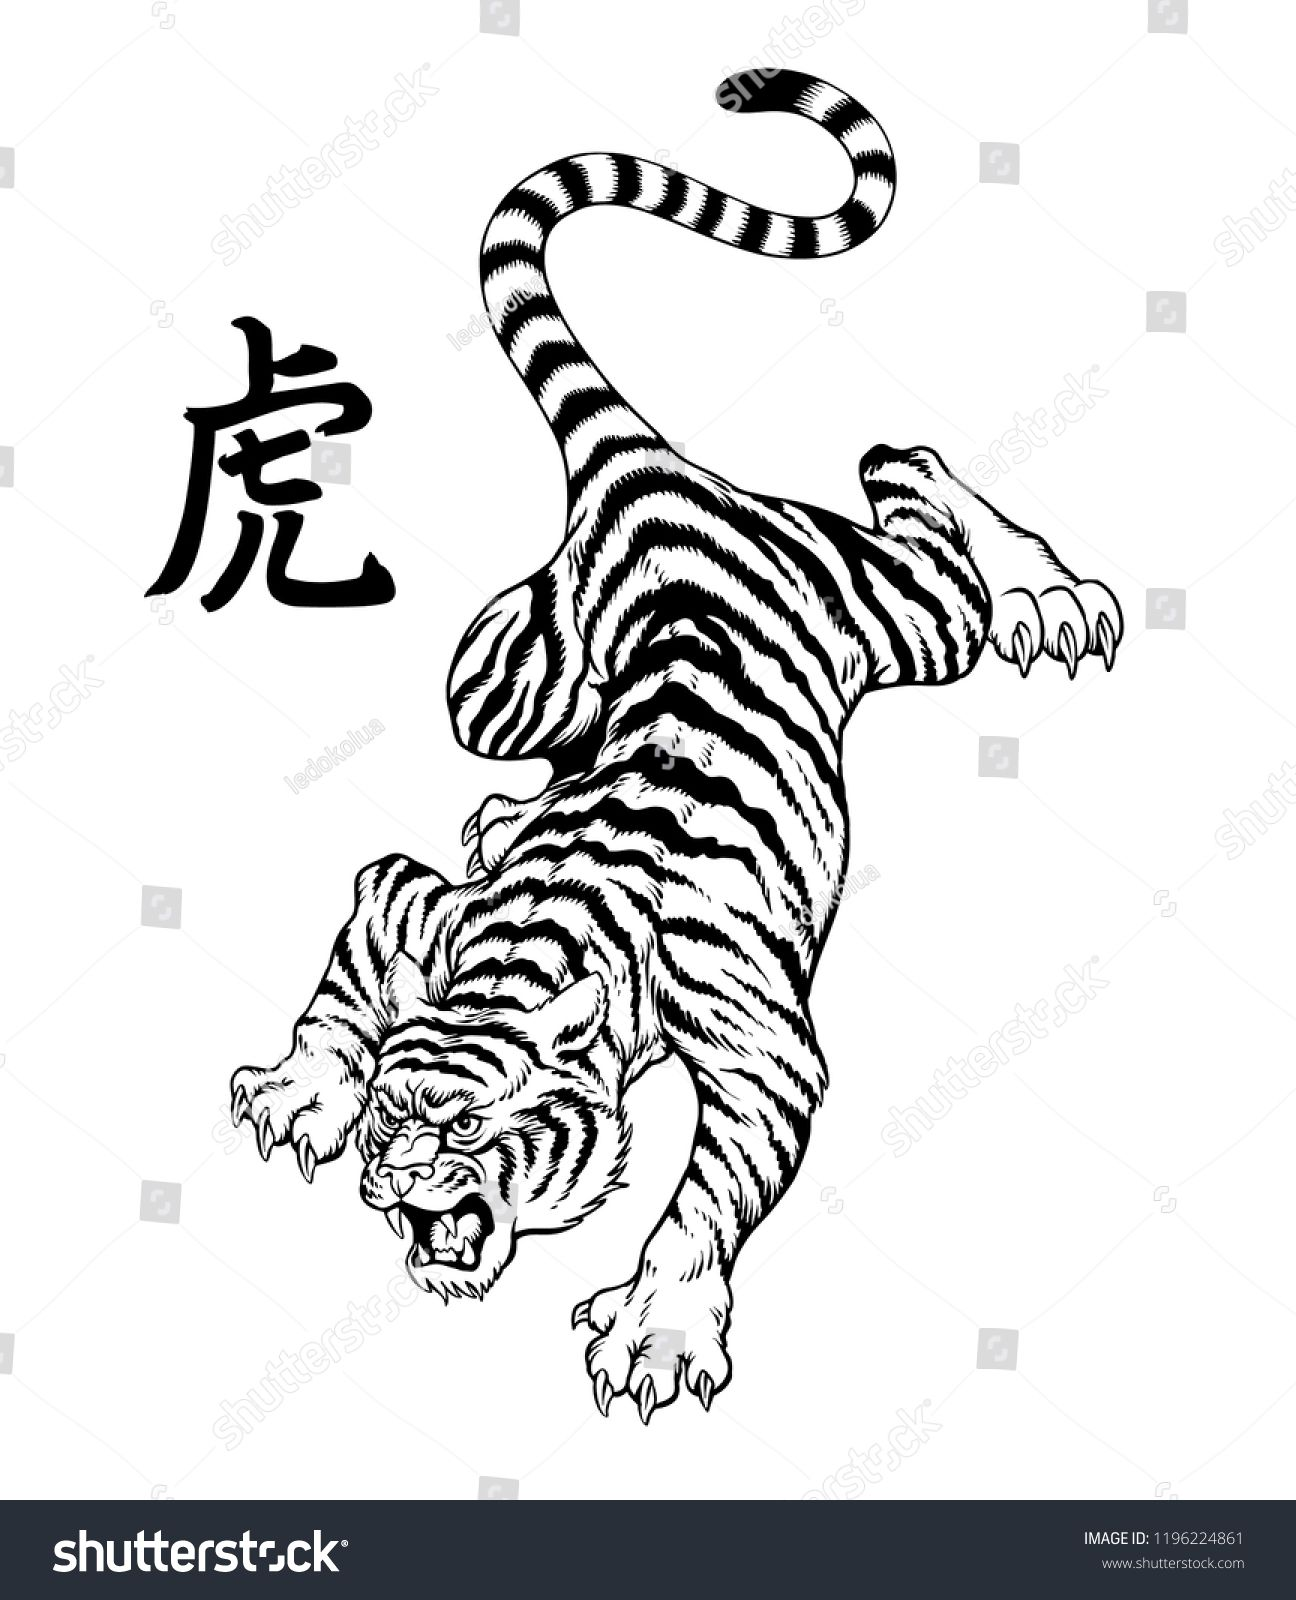 Tiger Tattoo Black White Vector Illustration Stock Vector Royalty Free 1196224861 In 2020 Traditional Tiger Tattoo Tiger Tattoo Design Tiger Tattoo